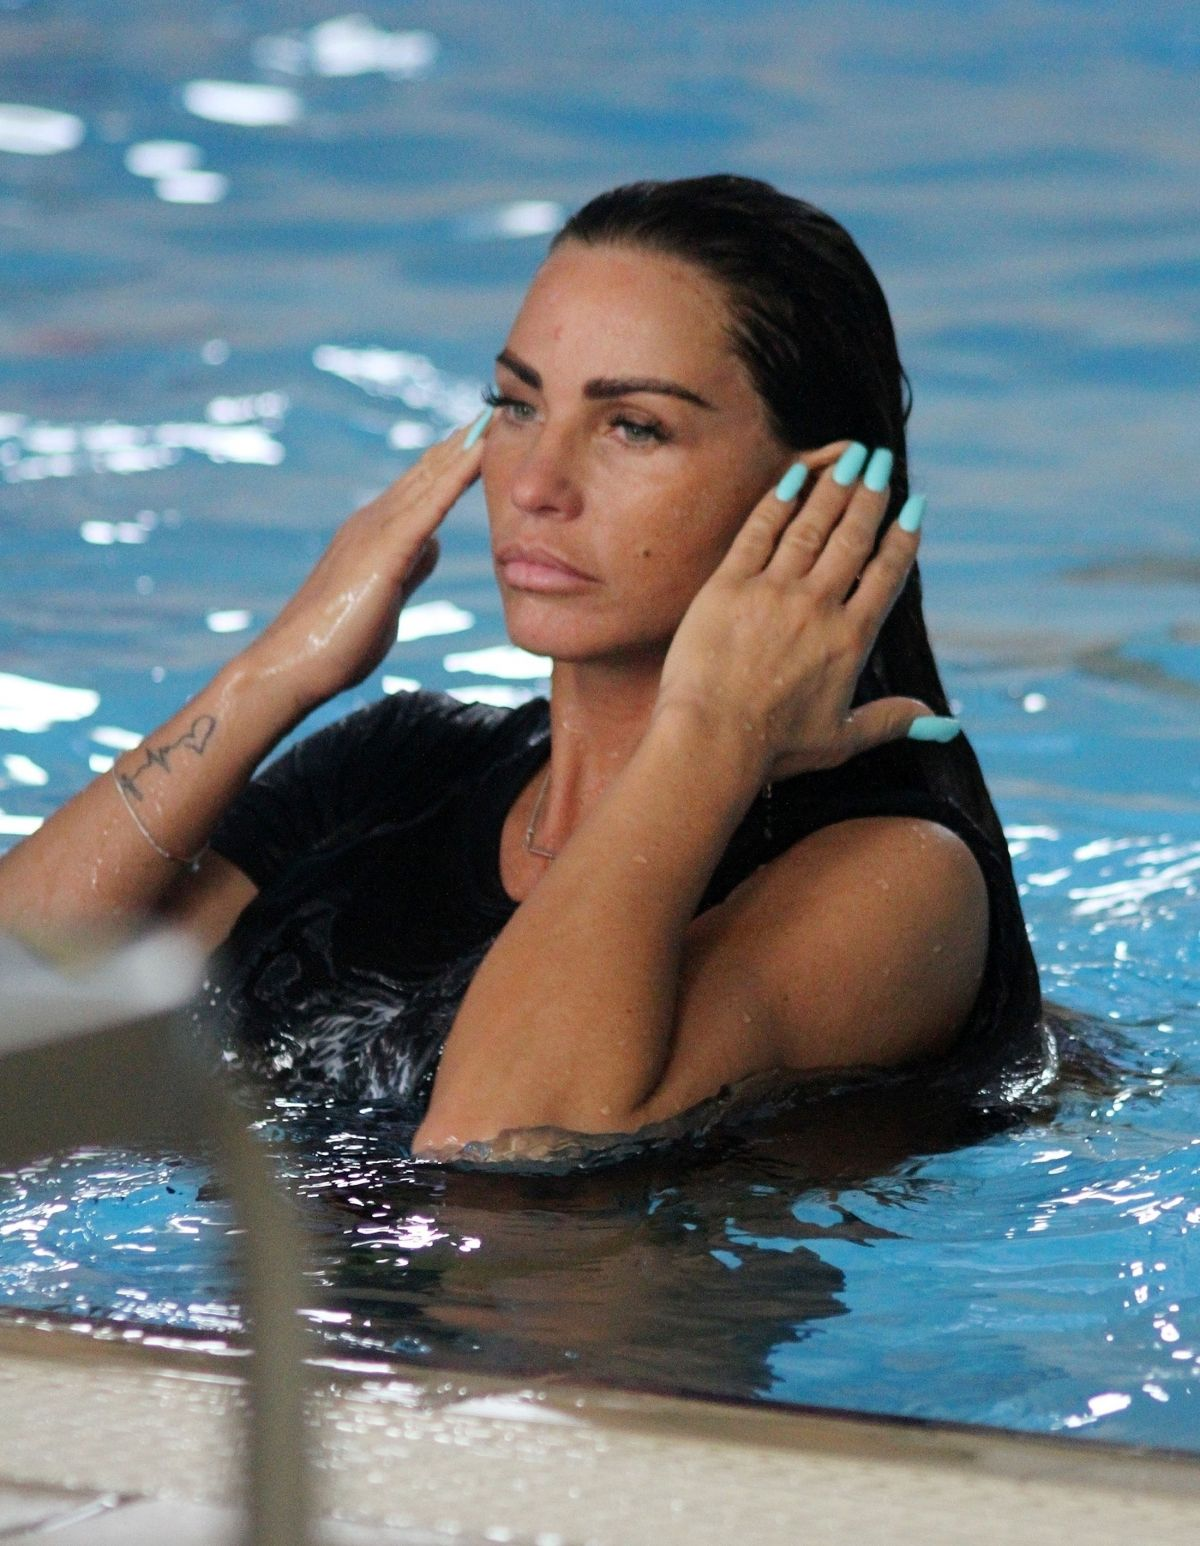 KATIE PRICE at a Local Swimming Pool 06/29/2018 – HawtCelebs